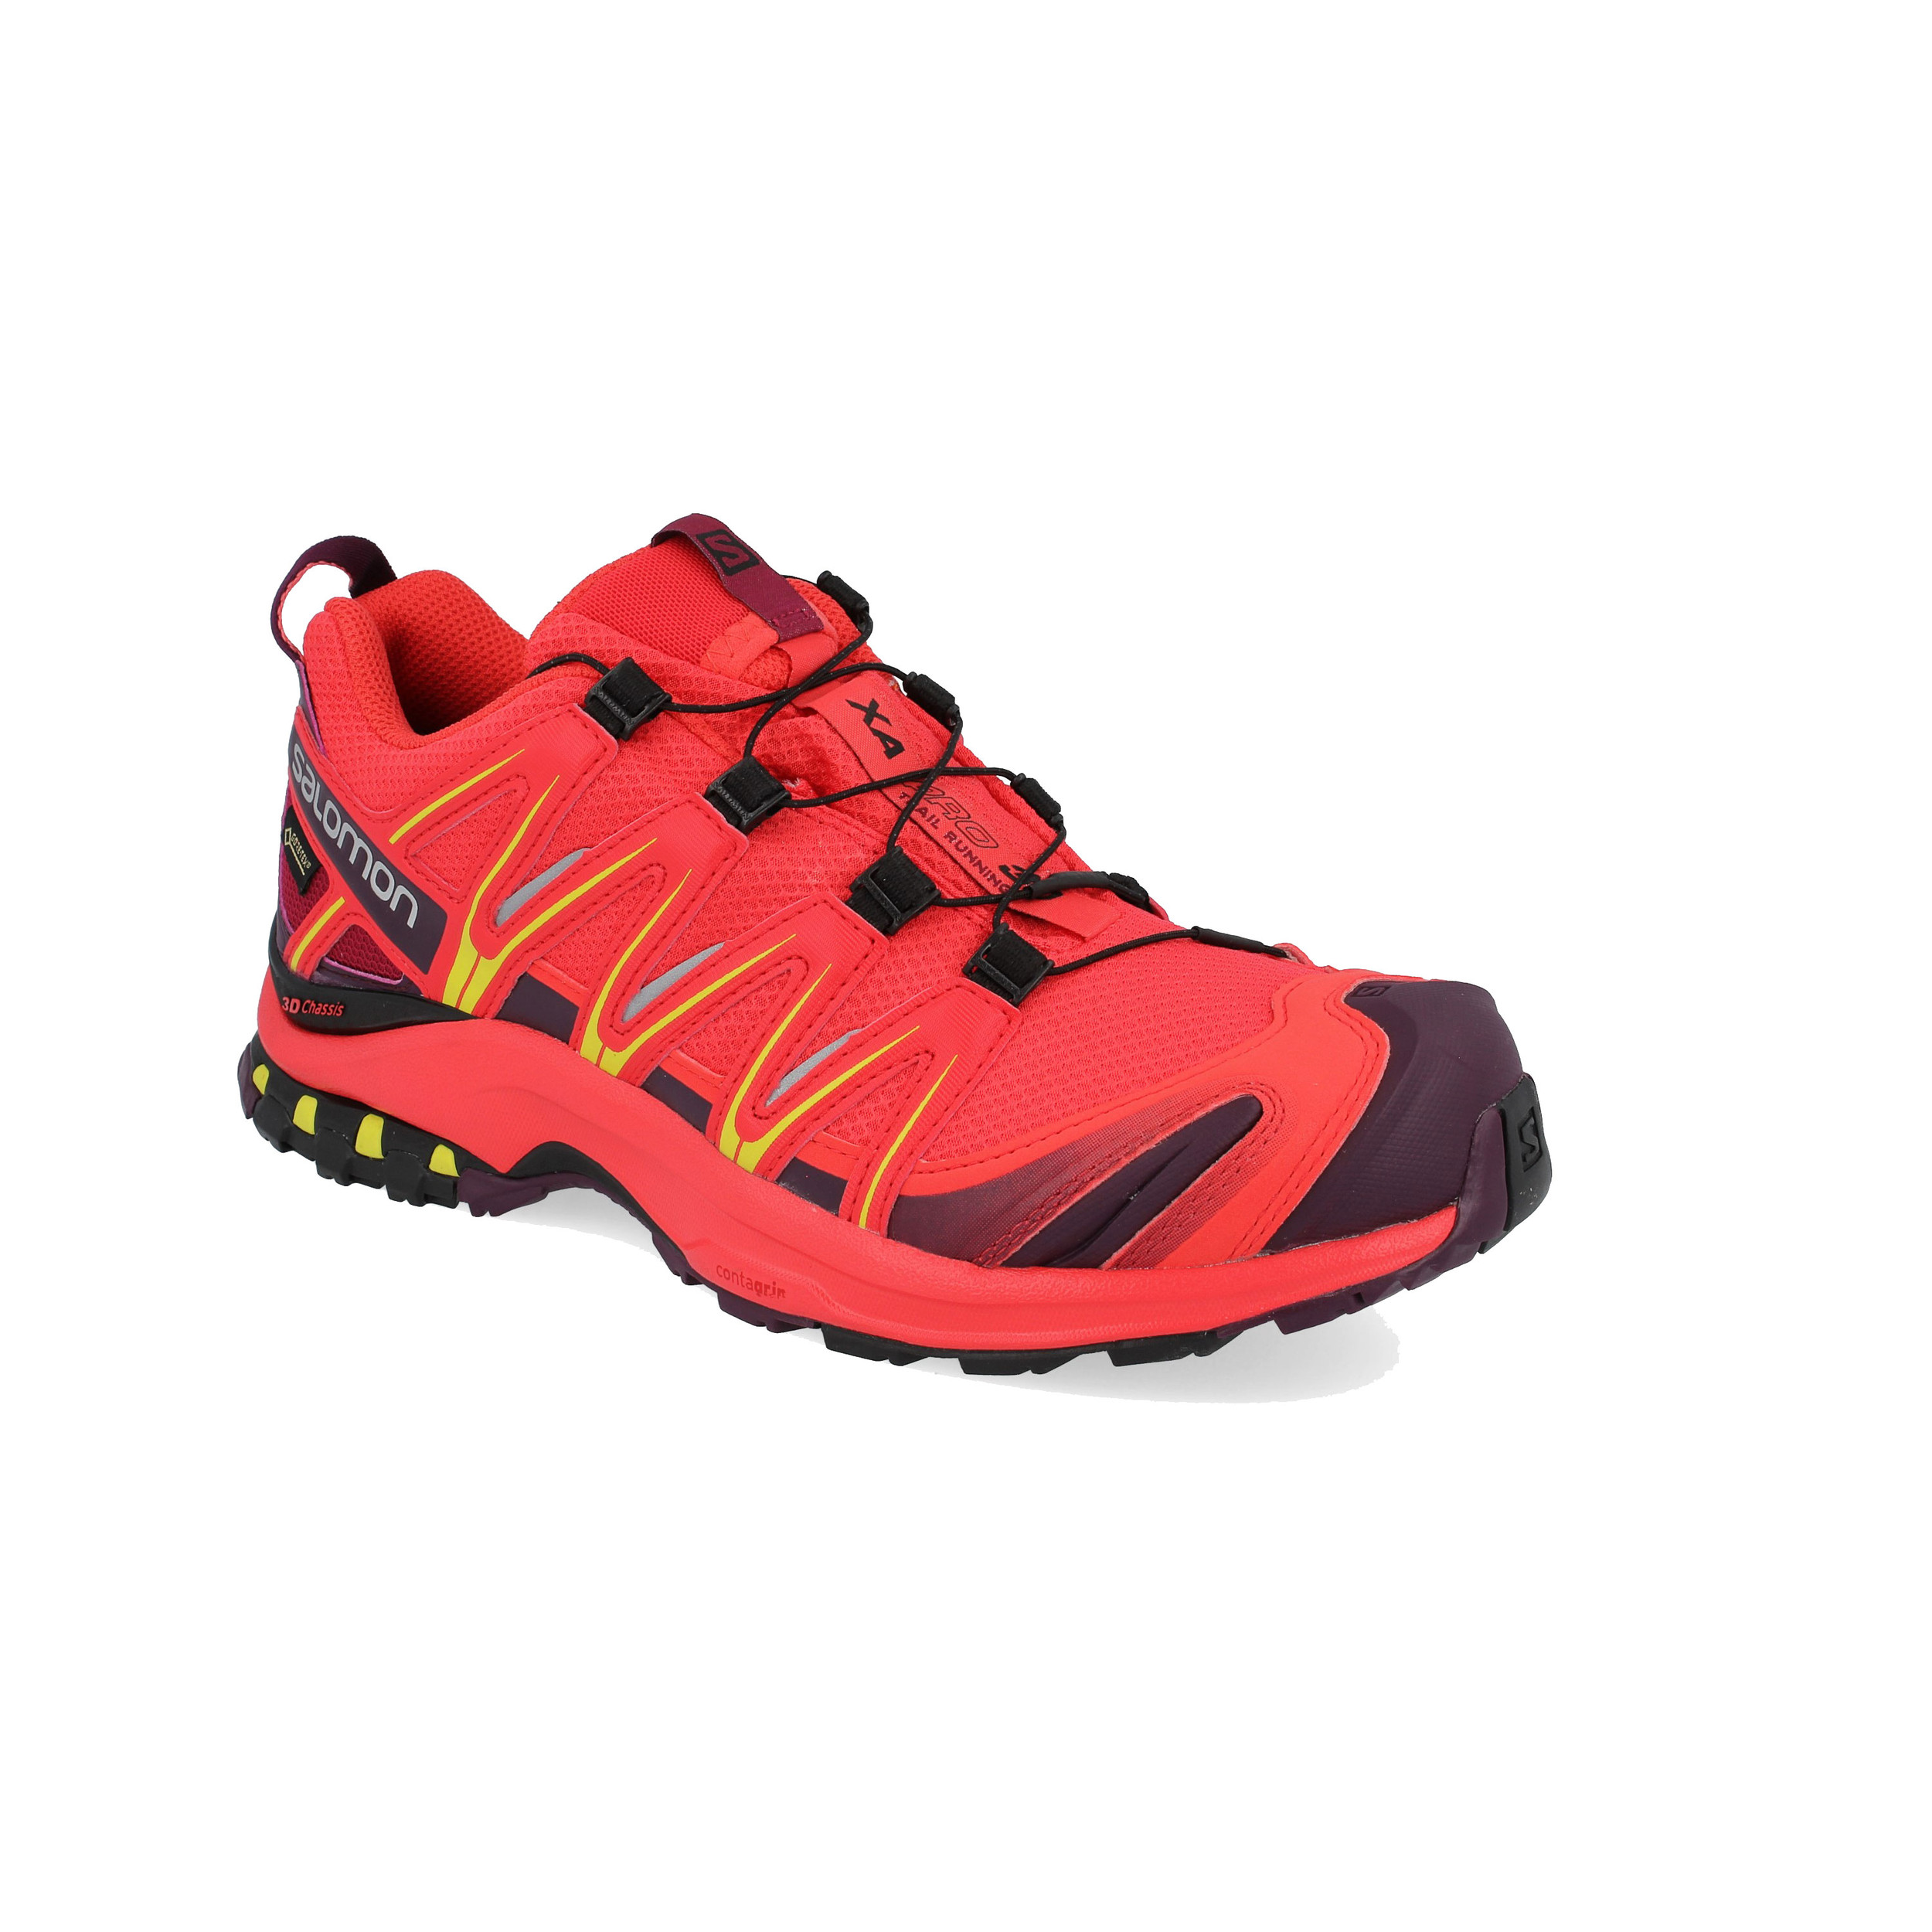 75a2a0094638 Salomon Womens XA Pro 3D GTX Trail Running Shoes Trainers Sneakers Red  Sports